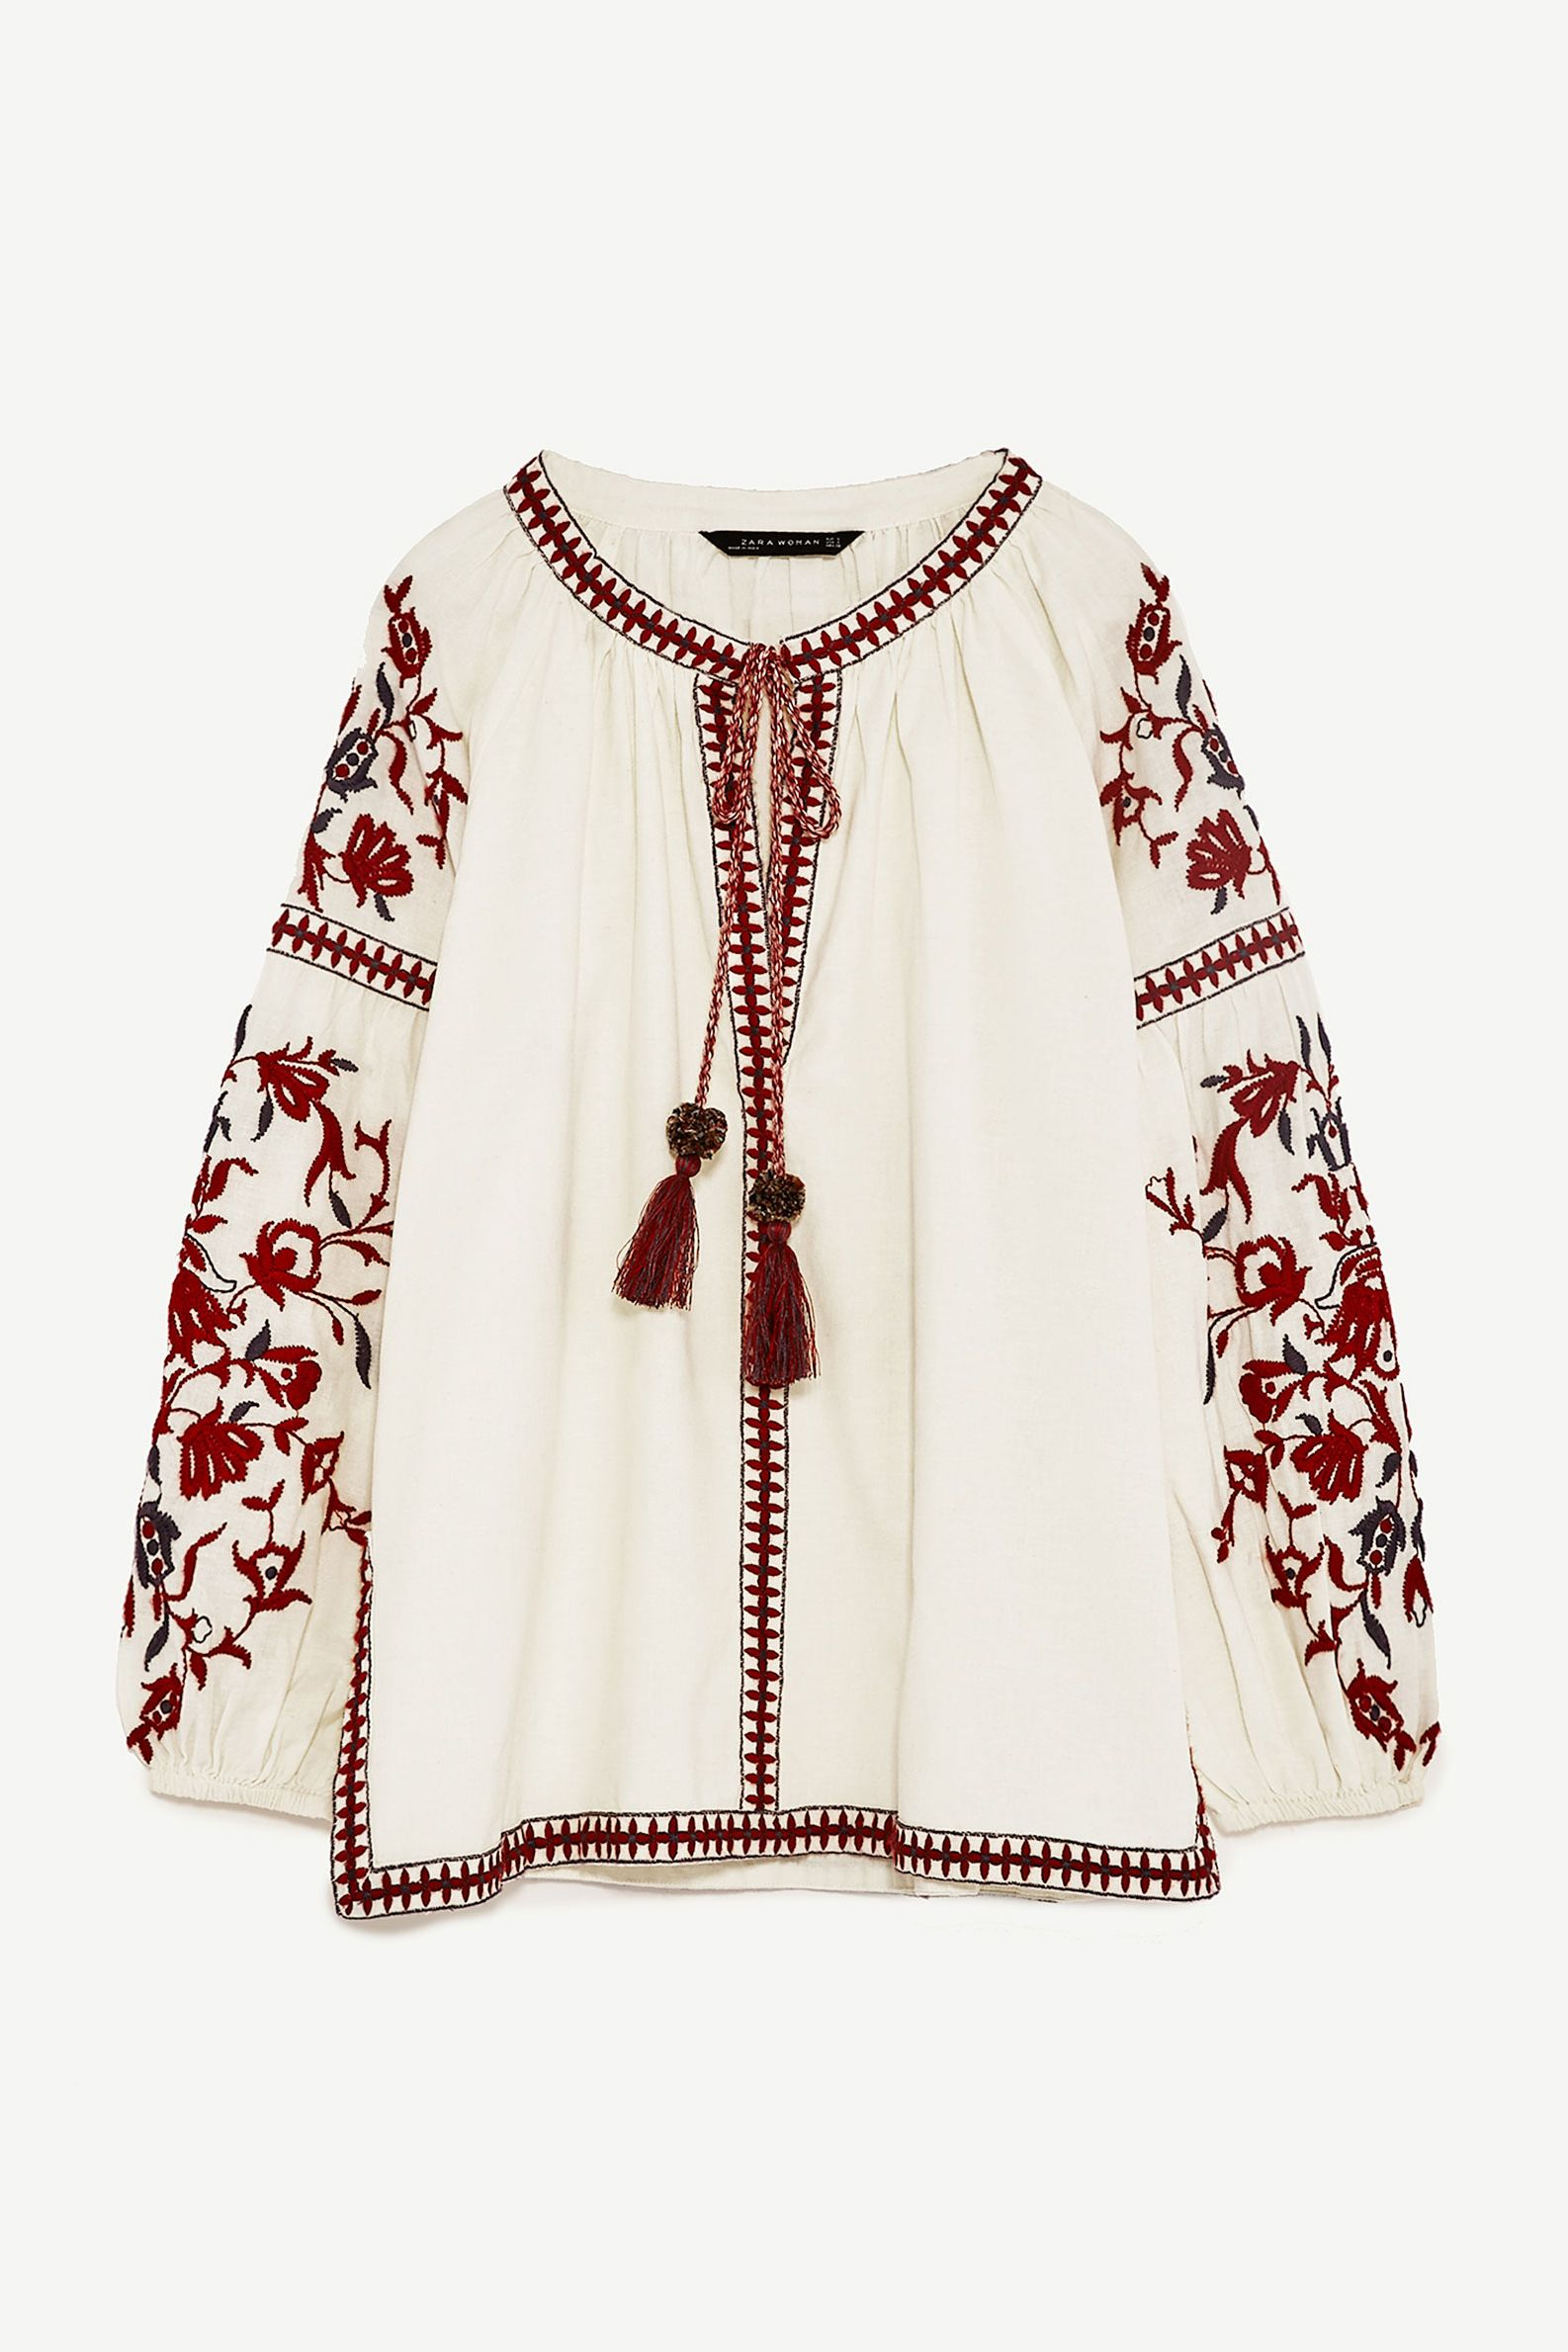 Zara Embroidered Peasant Top, £39.99